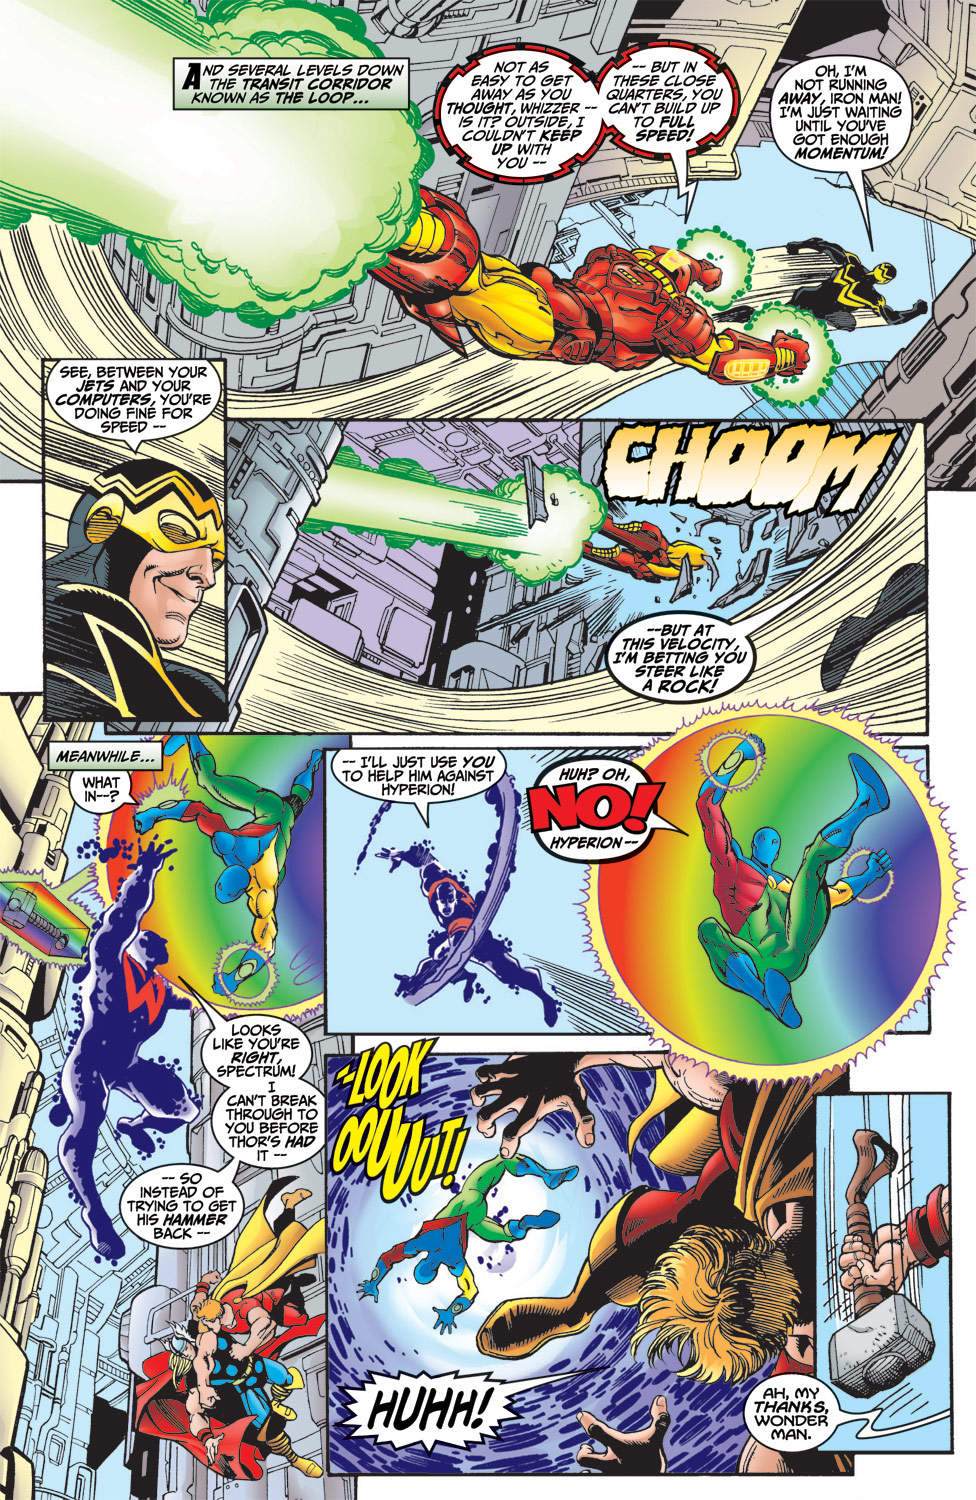 Read online Avengers (1998) comic -  Issue #6 - 18